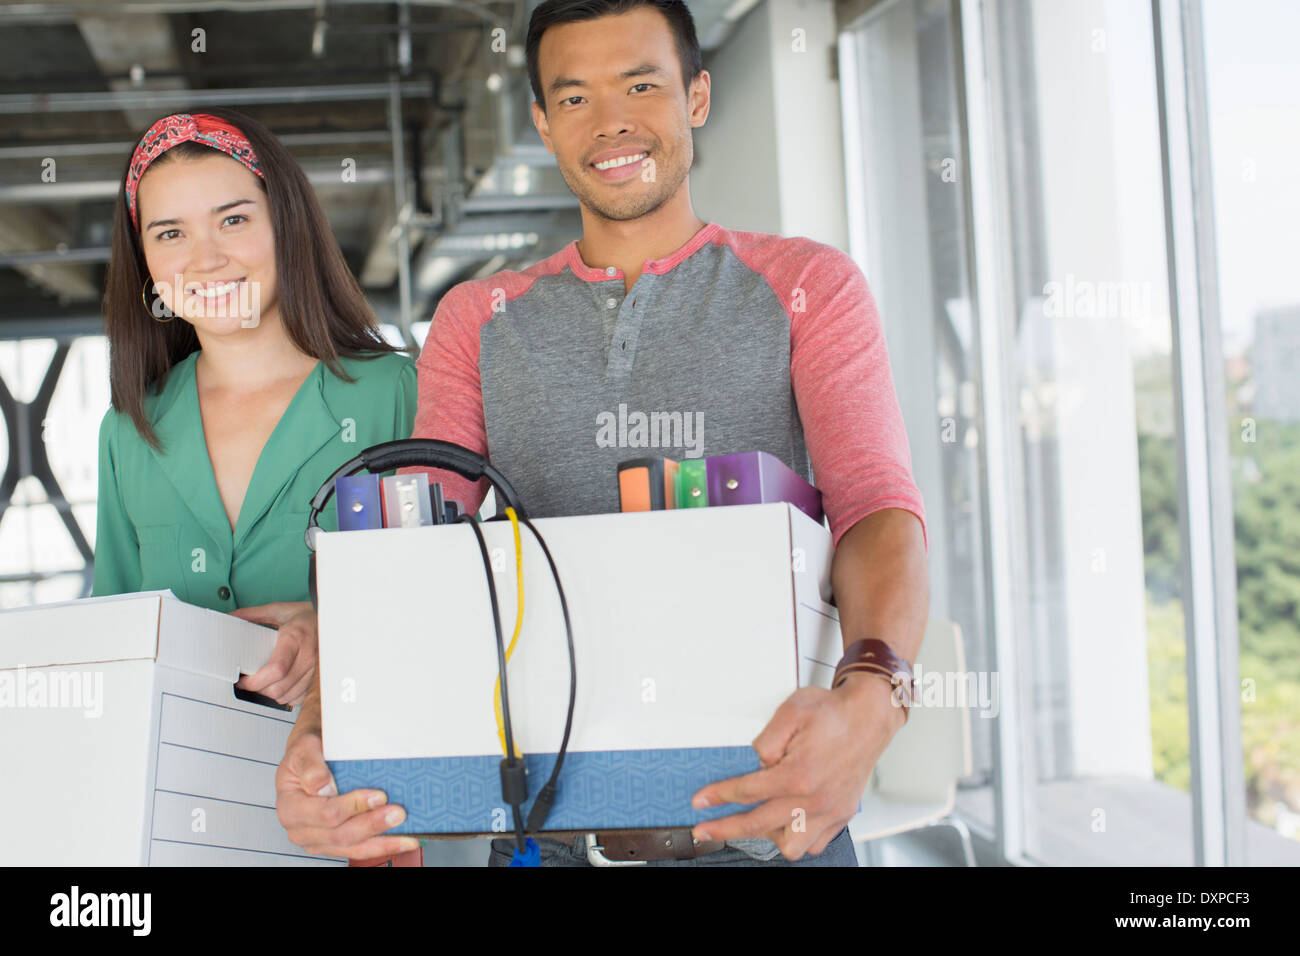 Portrait of happy casual business people carrying boxes of belongings in office - Stock Image